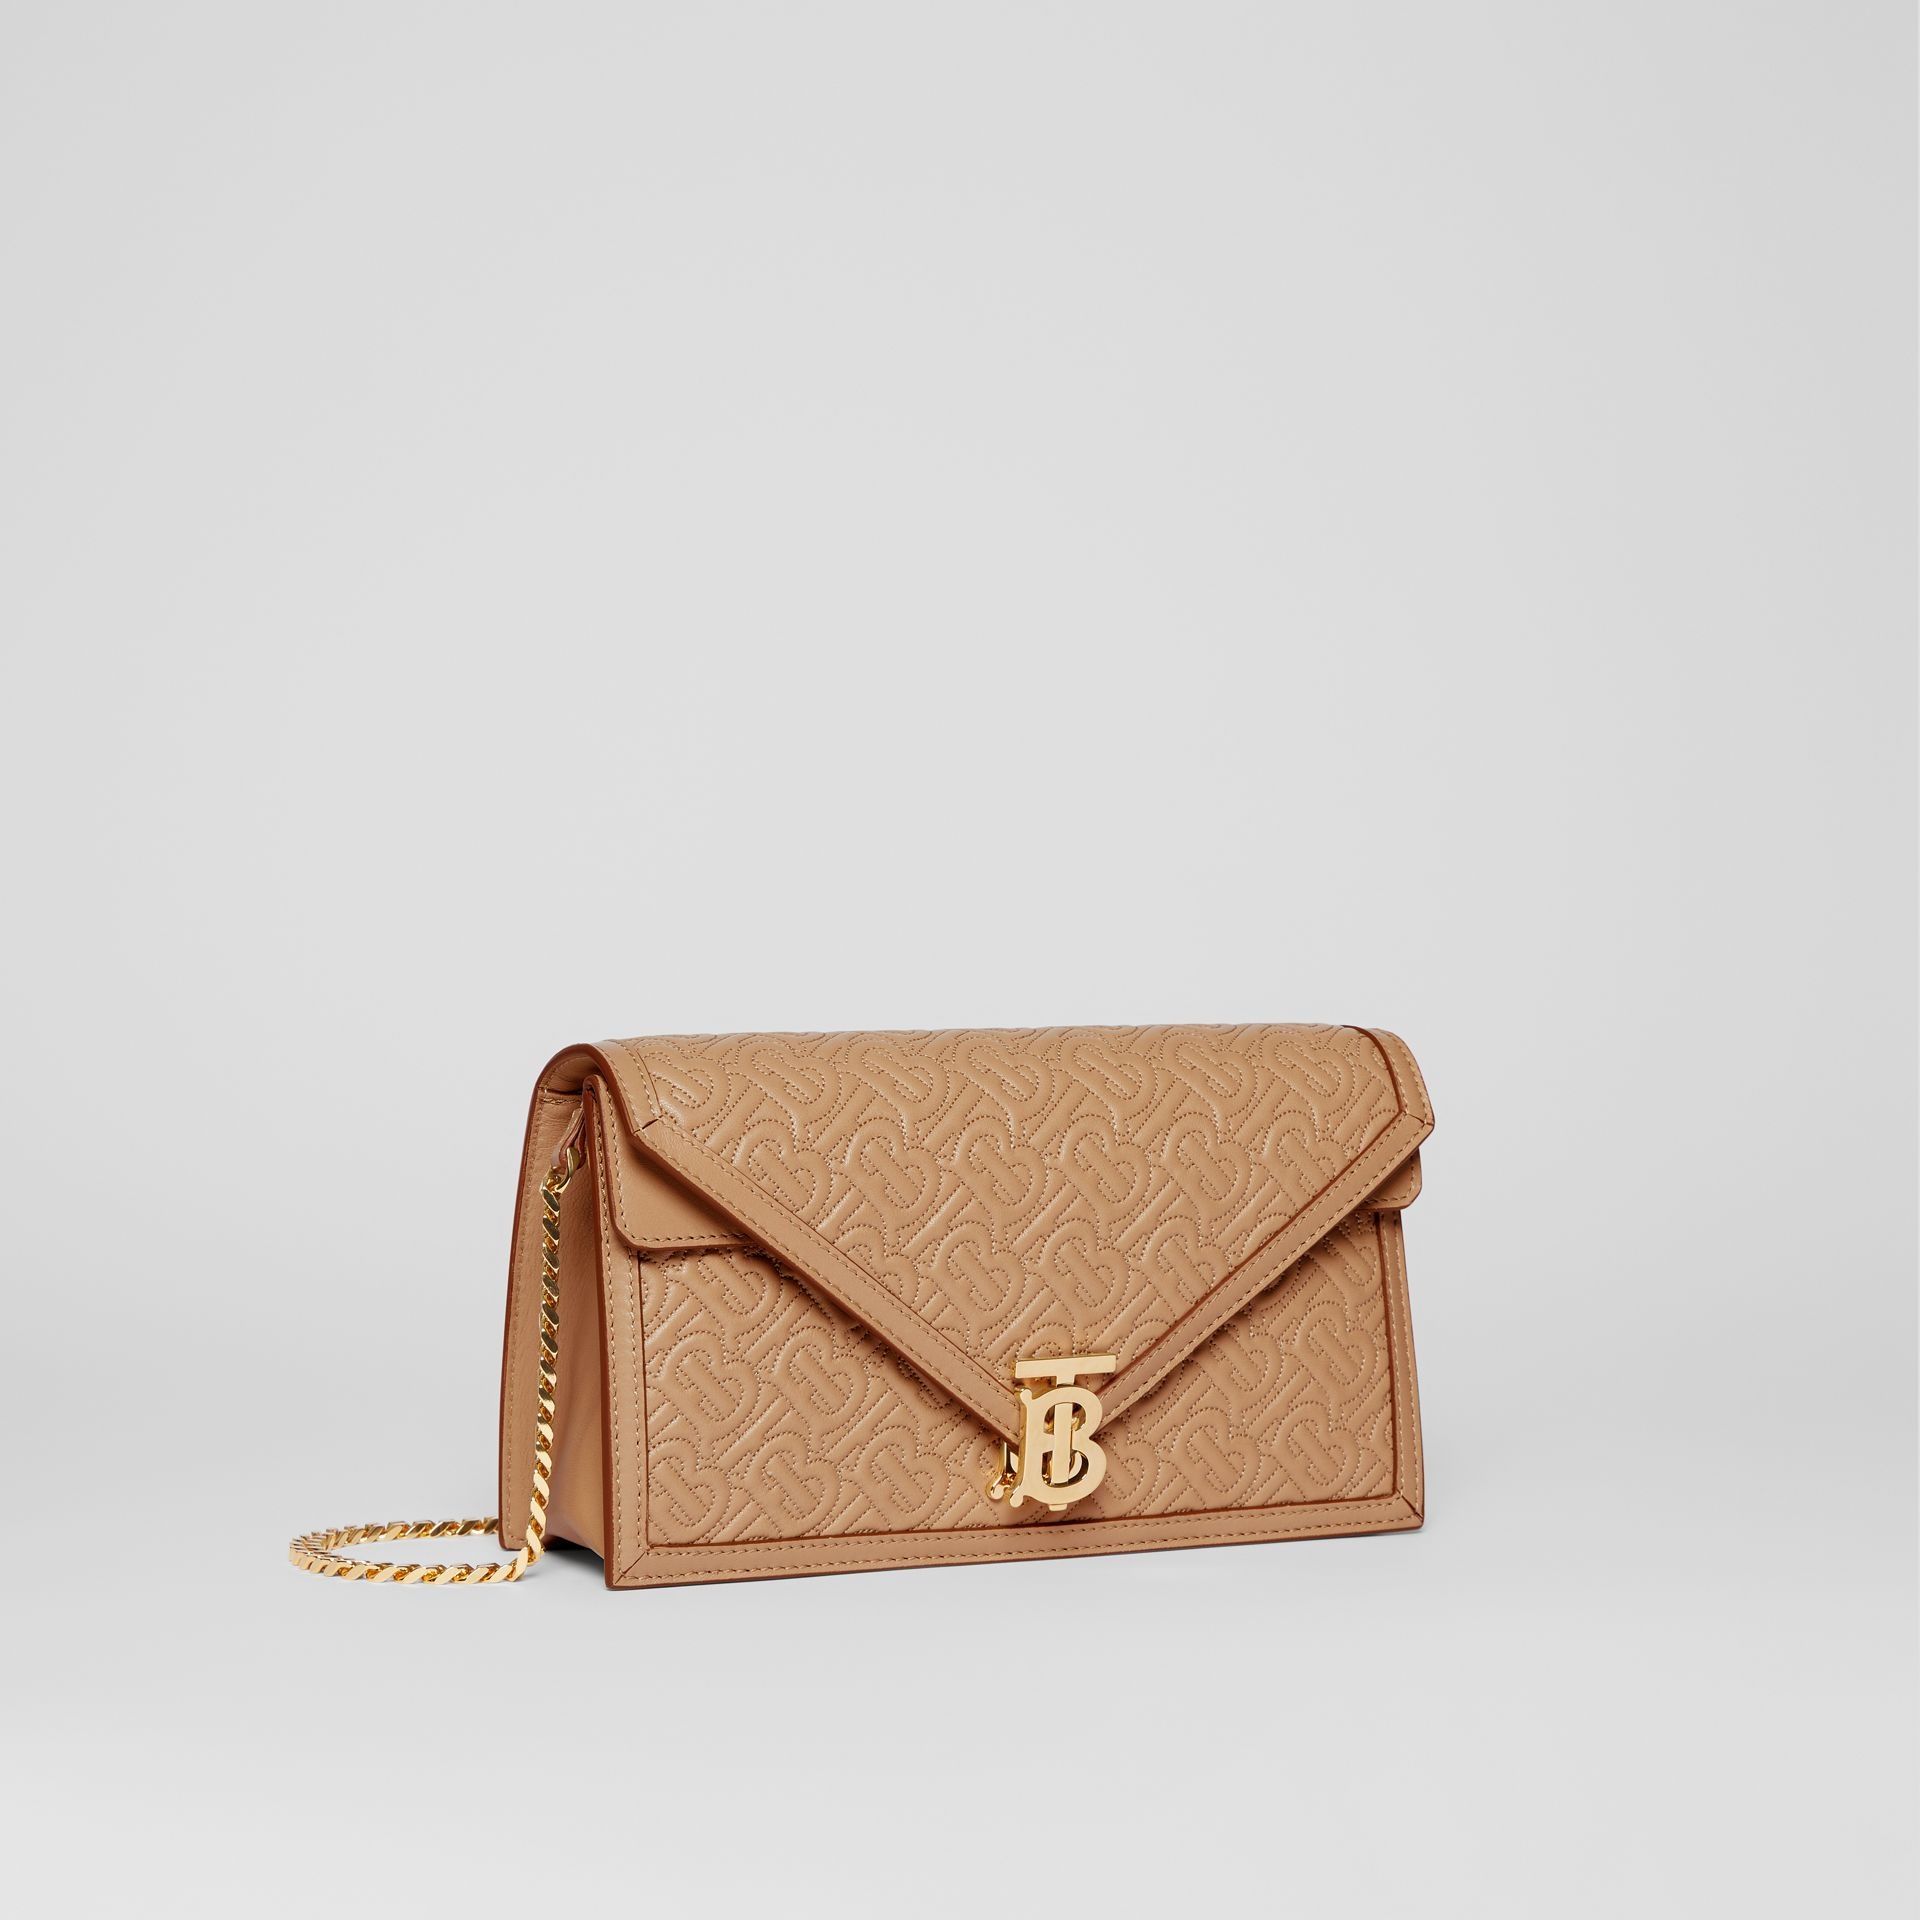 Small Quilted Monogram TB Envelope Clutch in Honey - Women | Burberry United Kingdom - gallery image 6